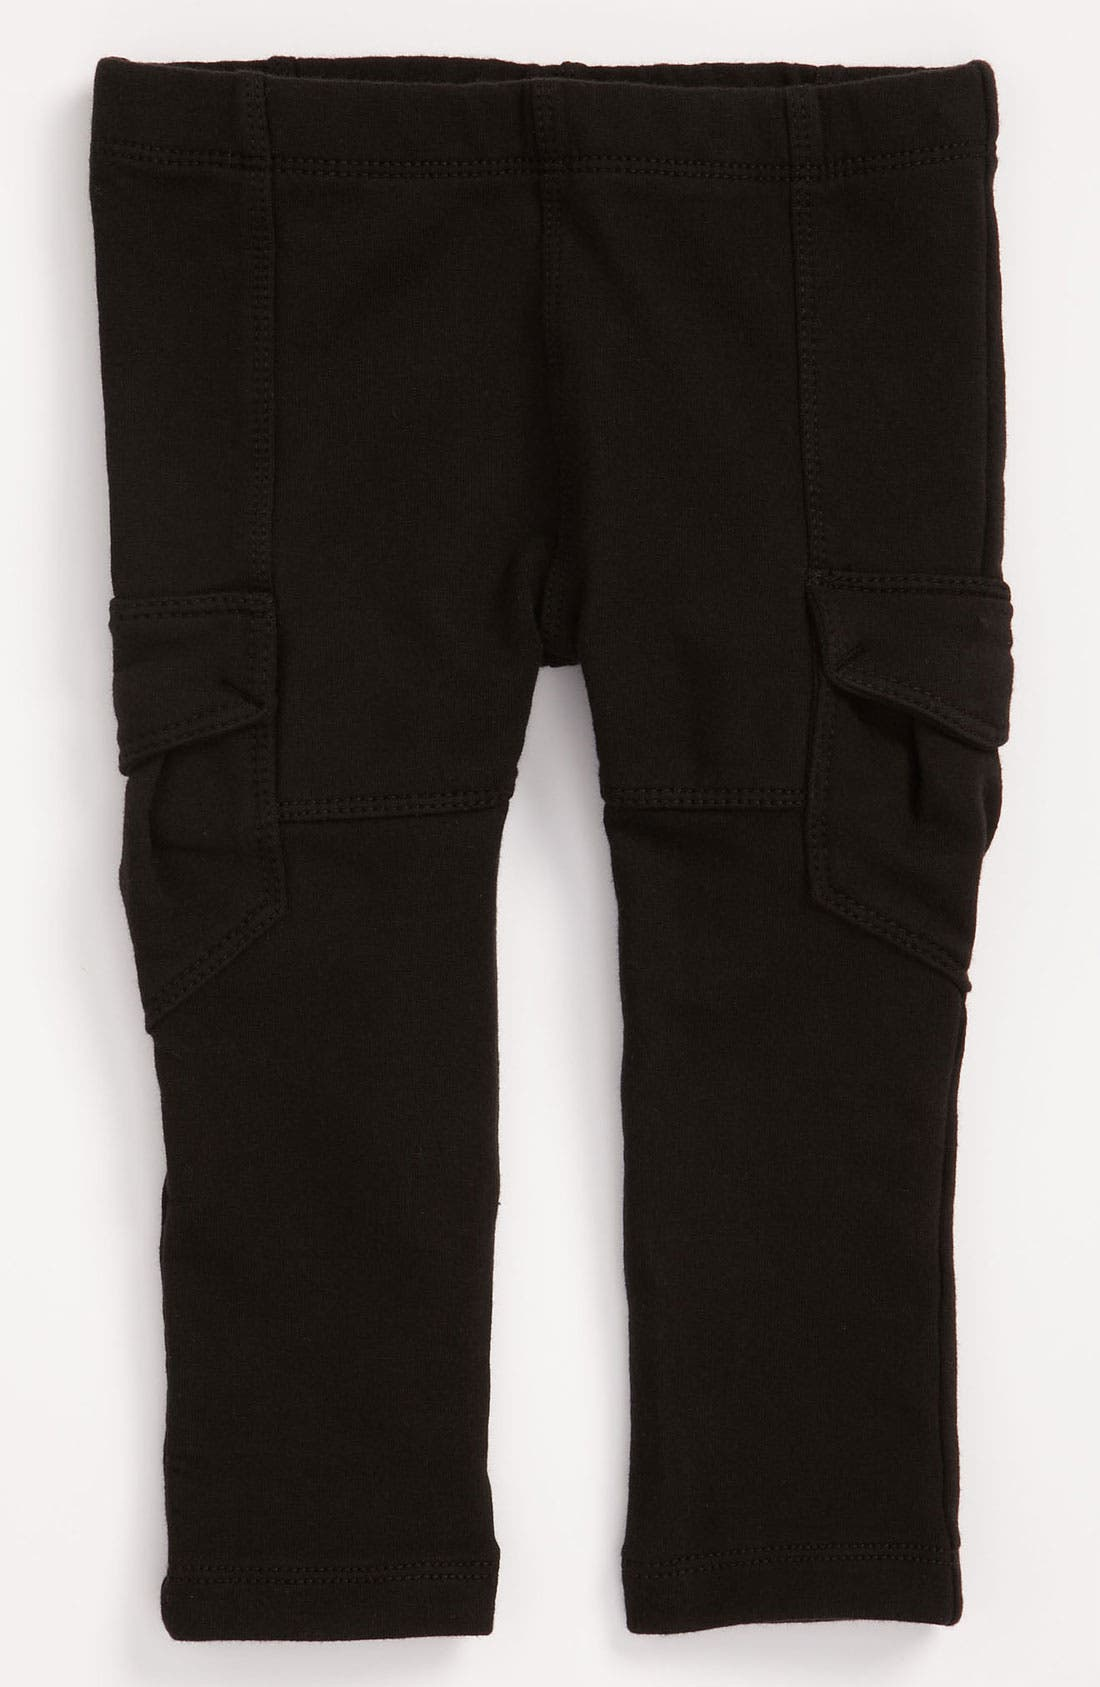 Alternate Image 1 Selected - Tea Collection Skinny French Terry Cargo Pants (Toddler)